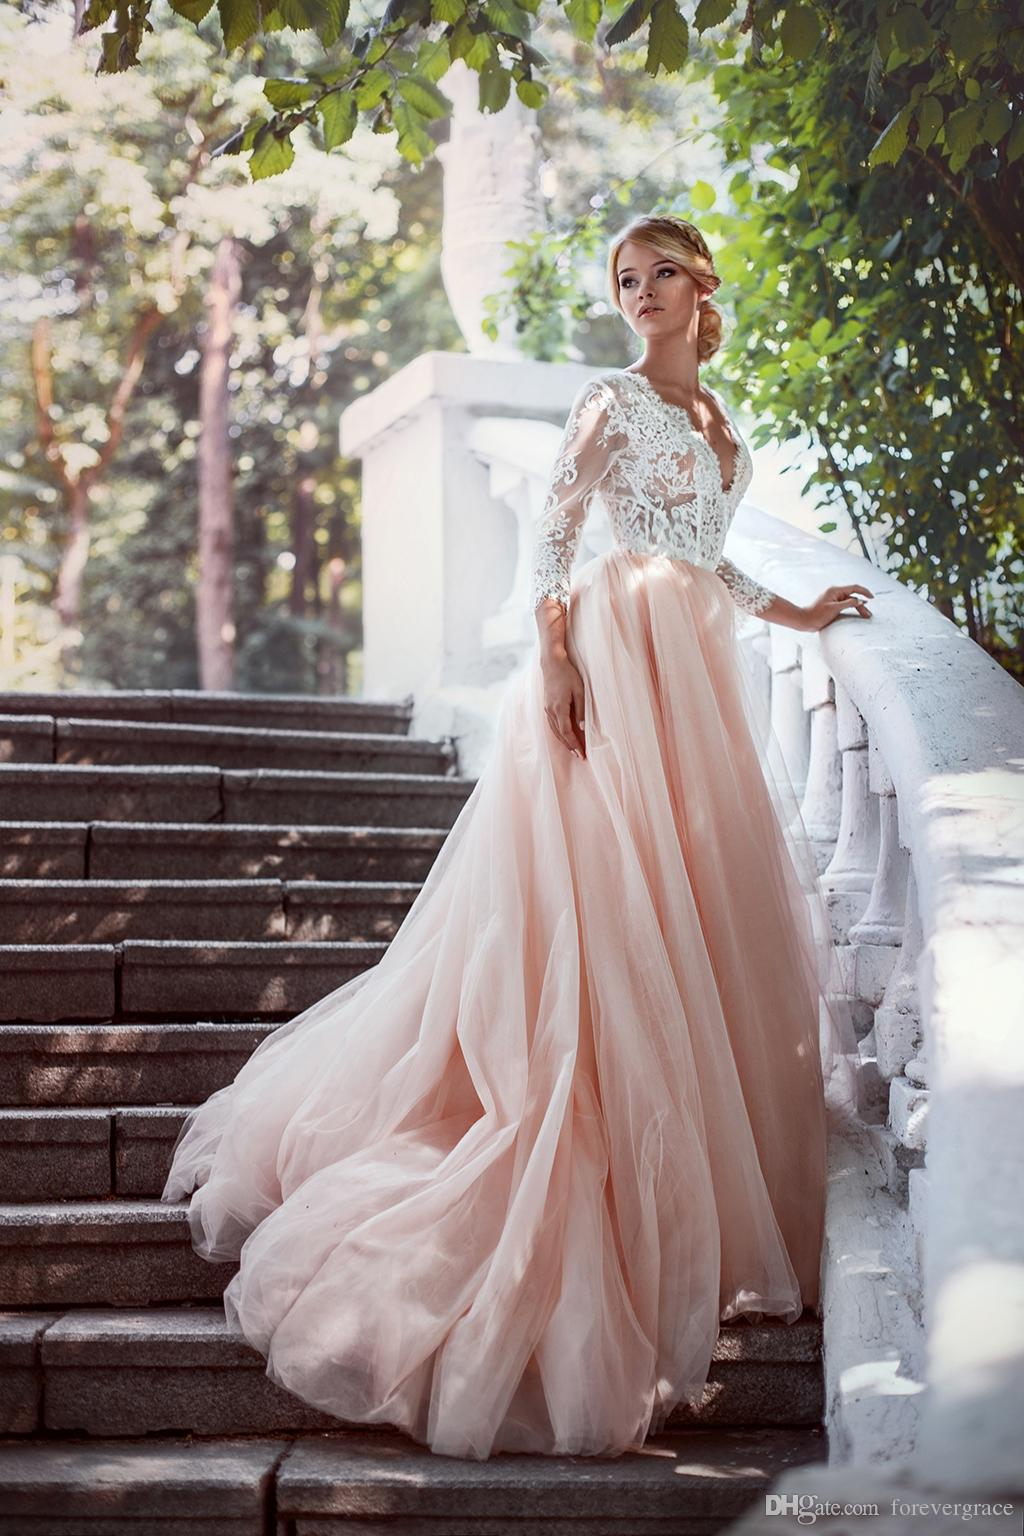 Discount Romantic 2017 Lace Pink Wedding Dress High Quality Deep V Neck  Tulle Bridal Gown Custom Made Plus Size Wedding Dresses Shop Online Wedding  ...